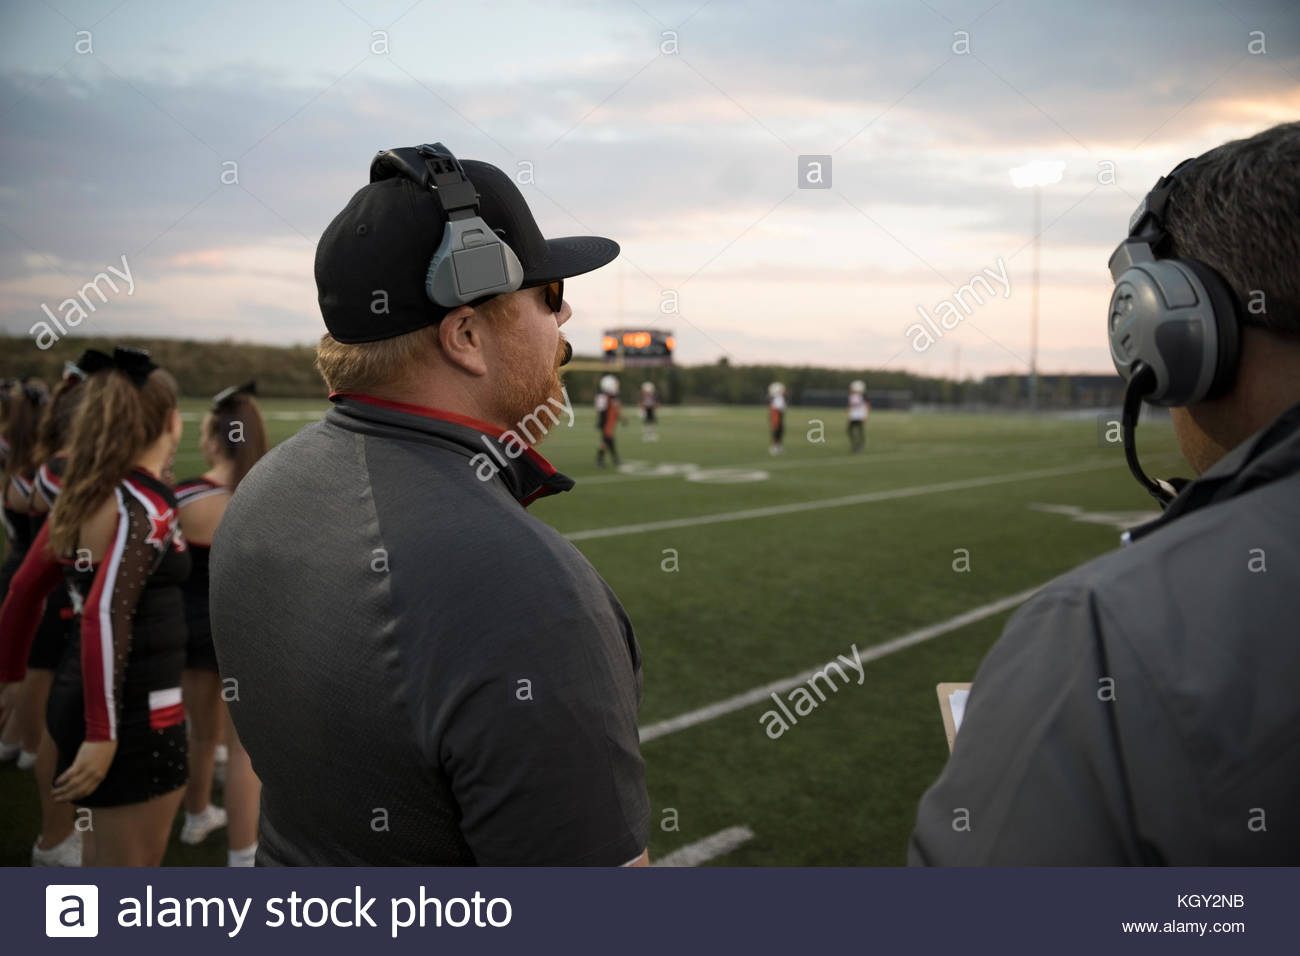 High school football coaches with headsets watching football game on sideline of football field - Stock Image